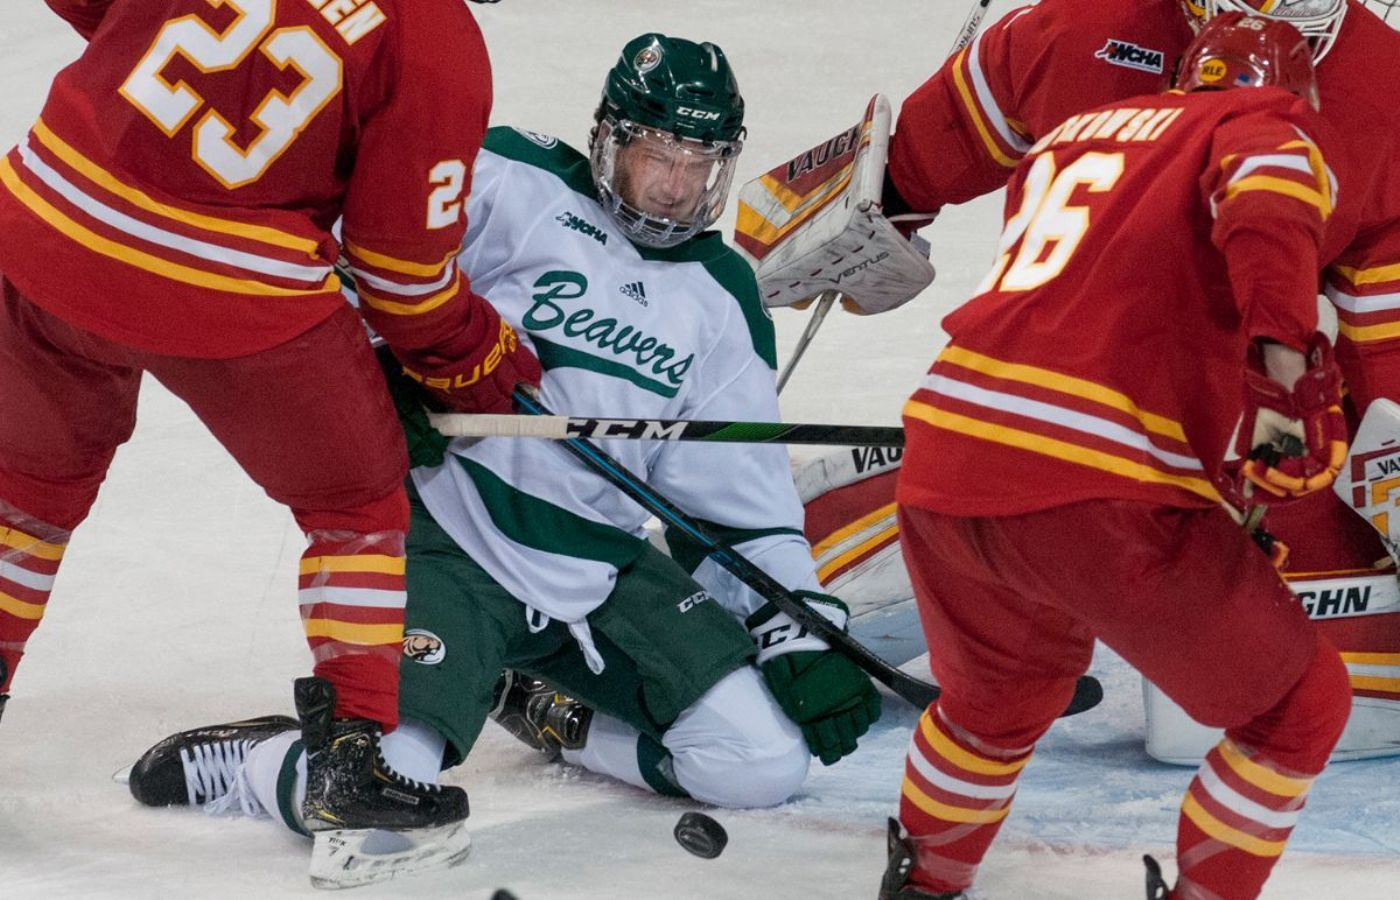 Bemidji State battles back to tie Ferris State 3-3, Drops shootout